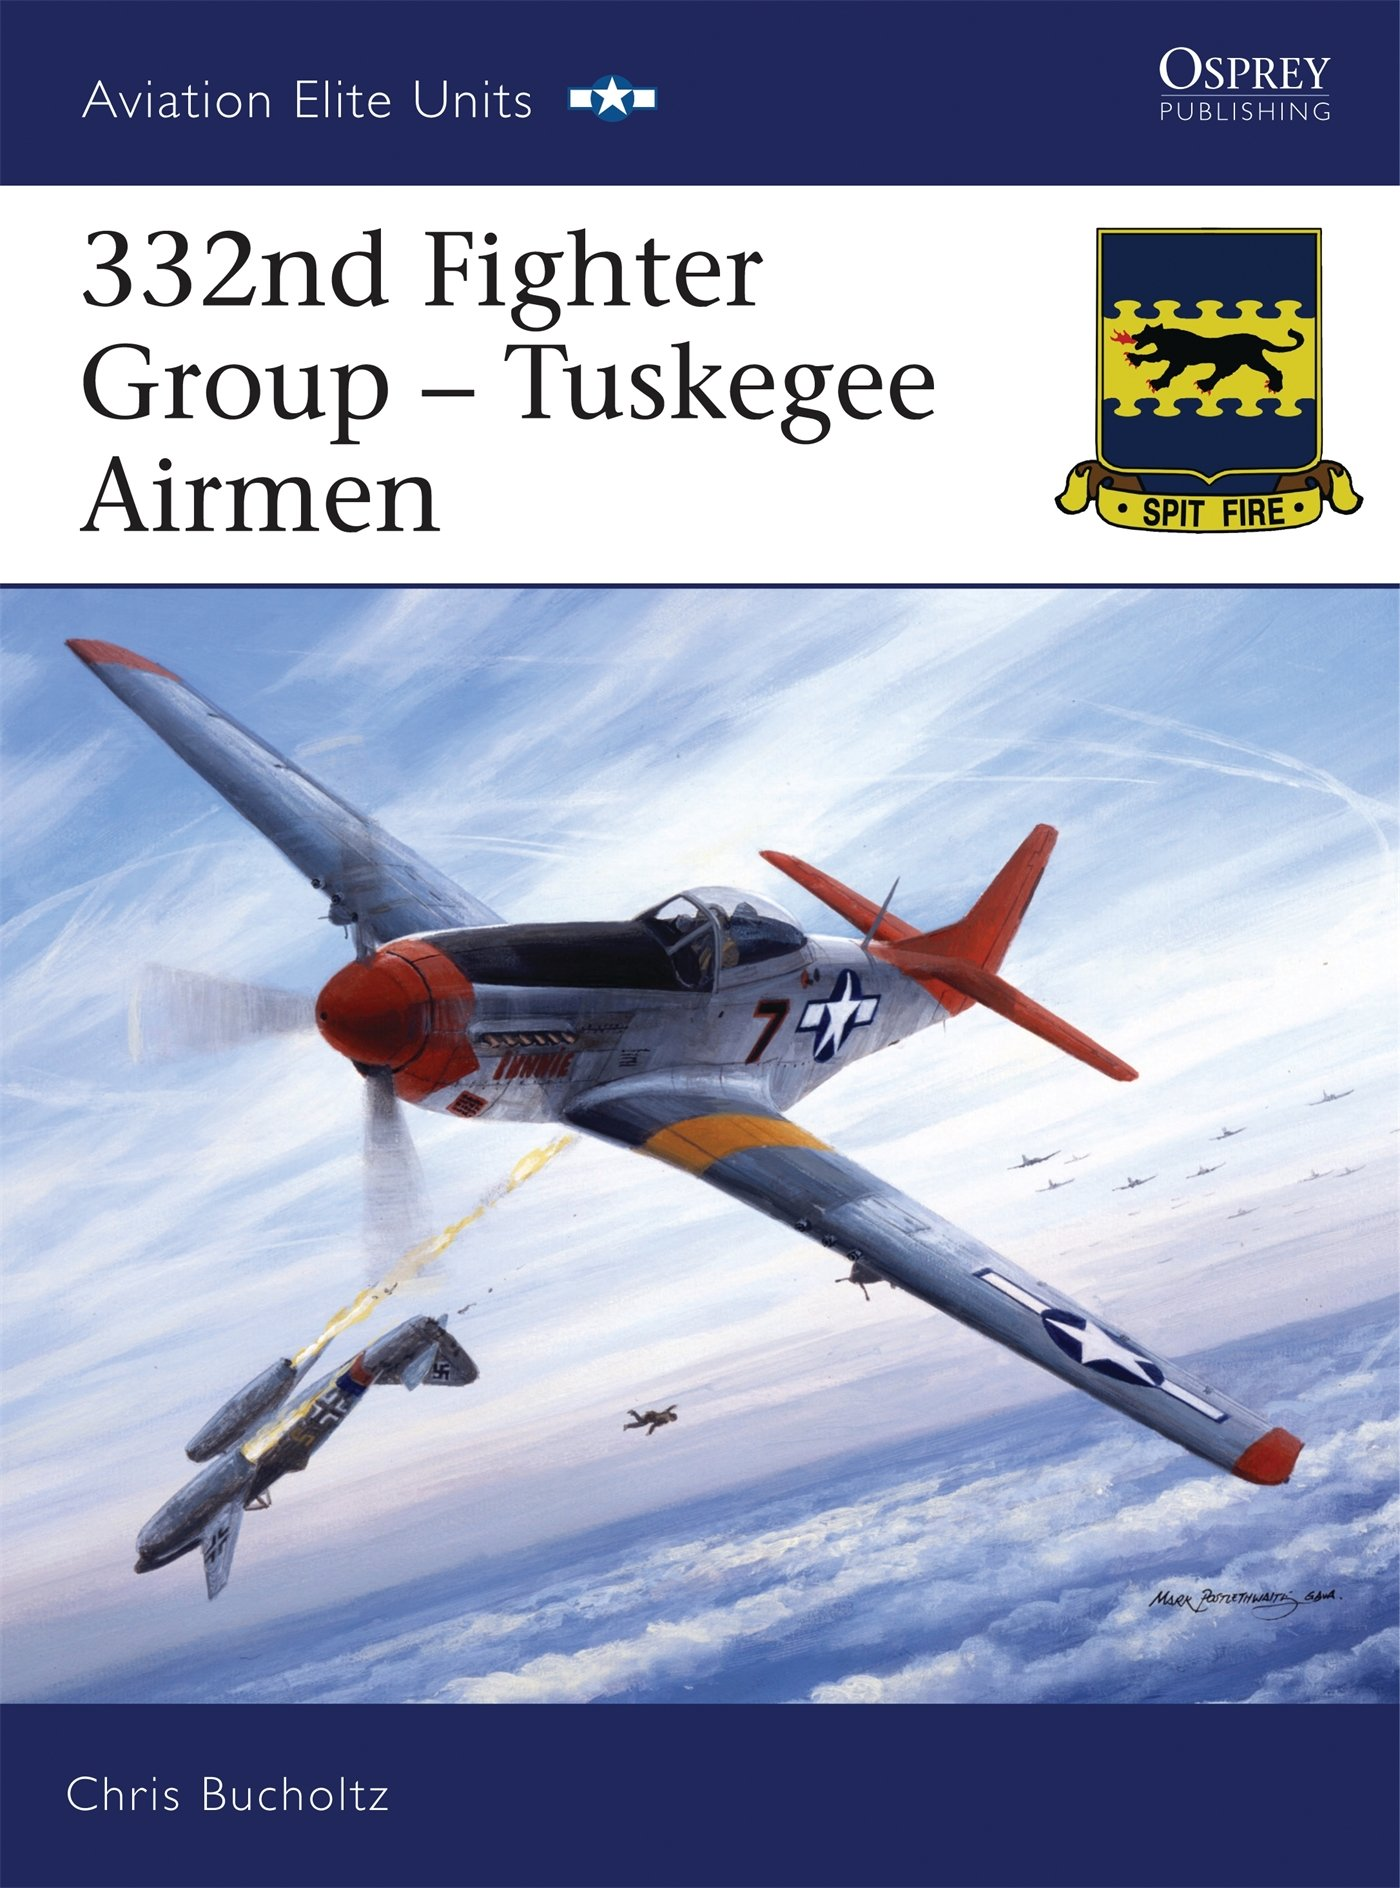 332nd Fighter Group: Tuskegee Airmen (Aviation Elite Units